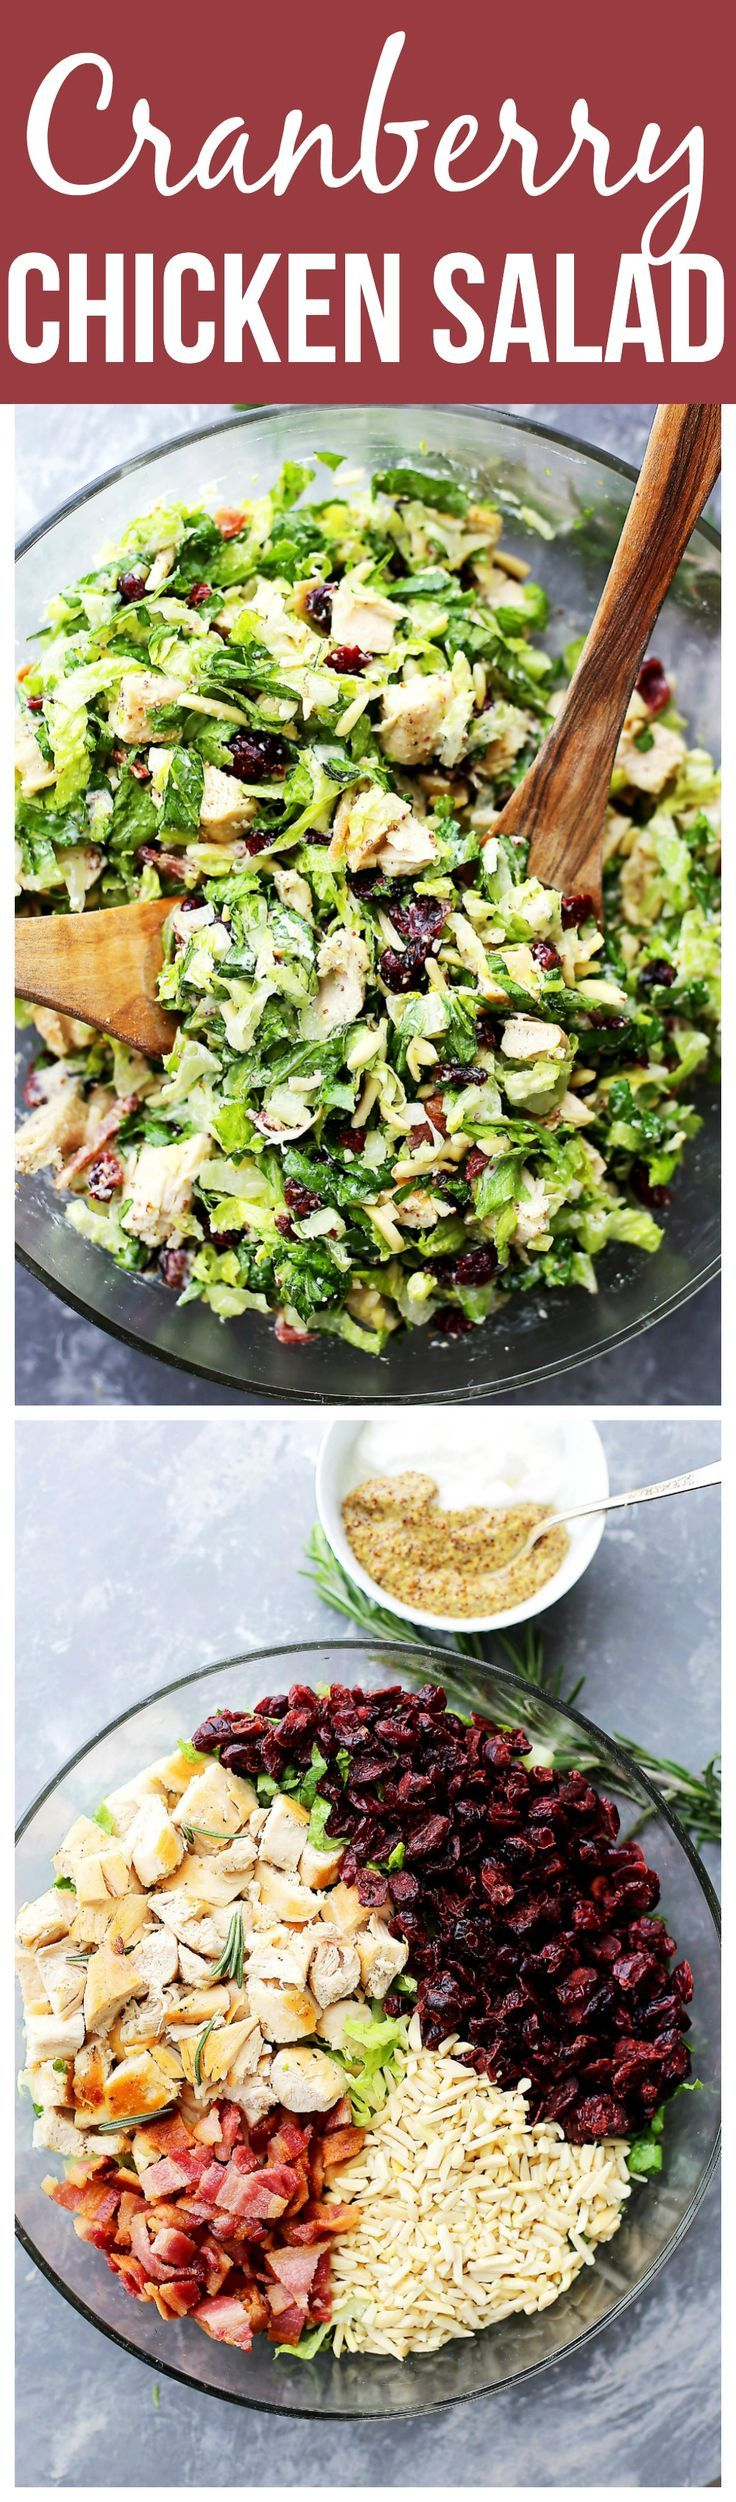 Cranberry Chicken Salad with Light Dijon Parmesan Dressing - Festive and delicious chicken salad packed with sweet cranberries, crunchy almonds, crispy bacon, and a creamy salad dressing that is lightened up, yet very flavorful!